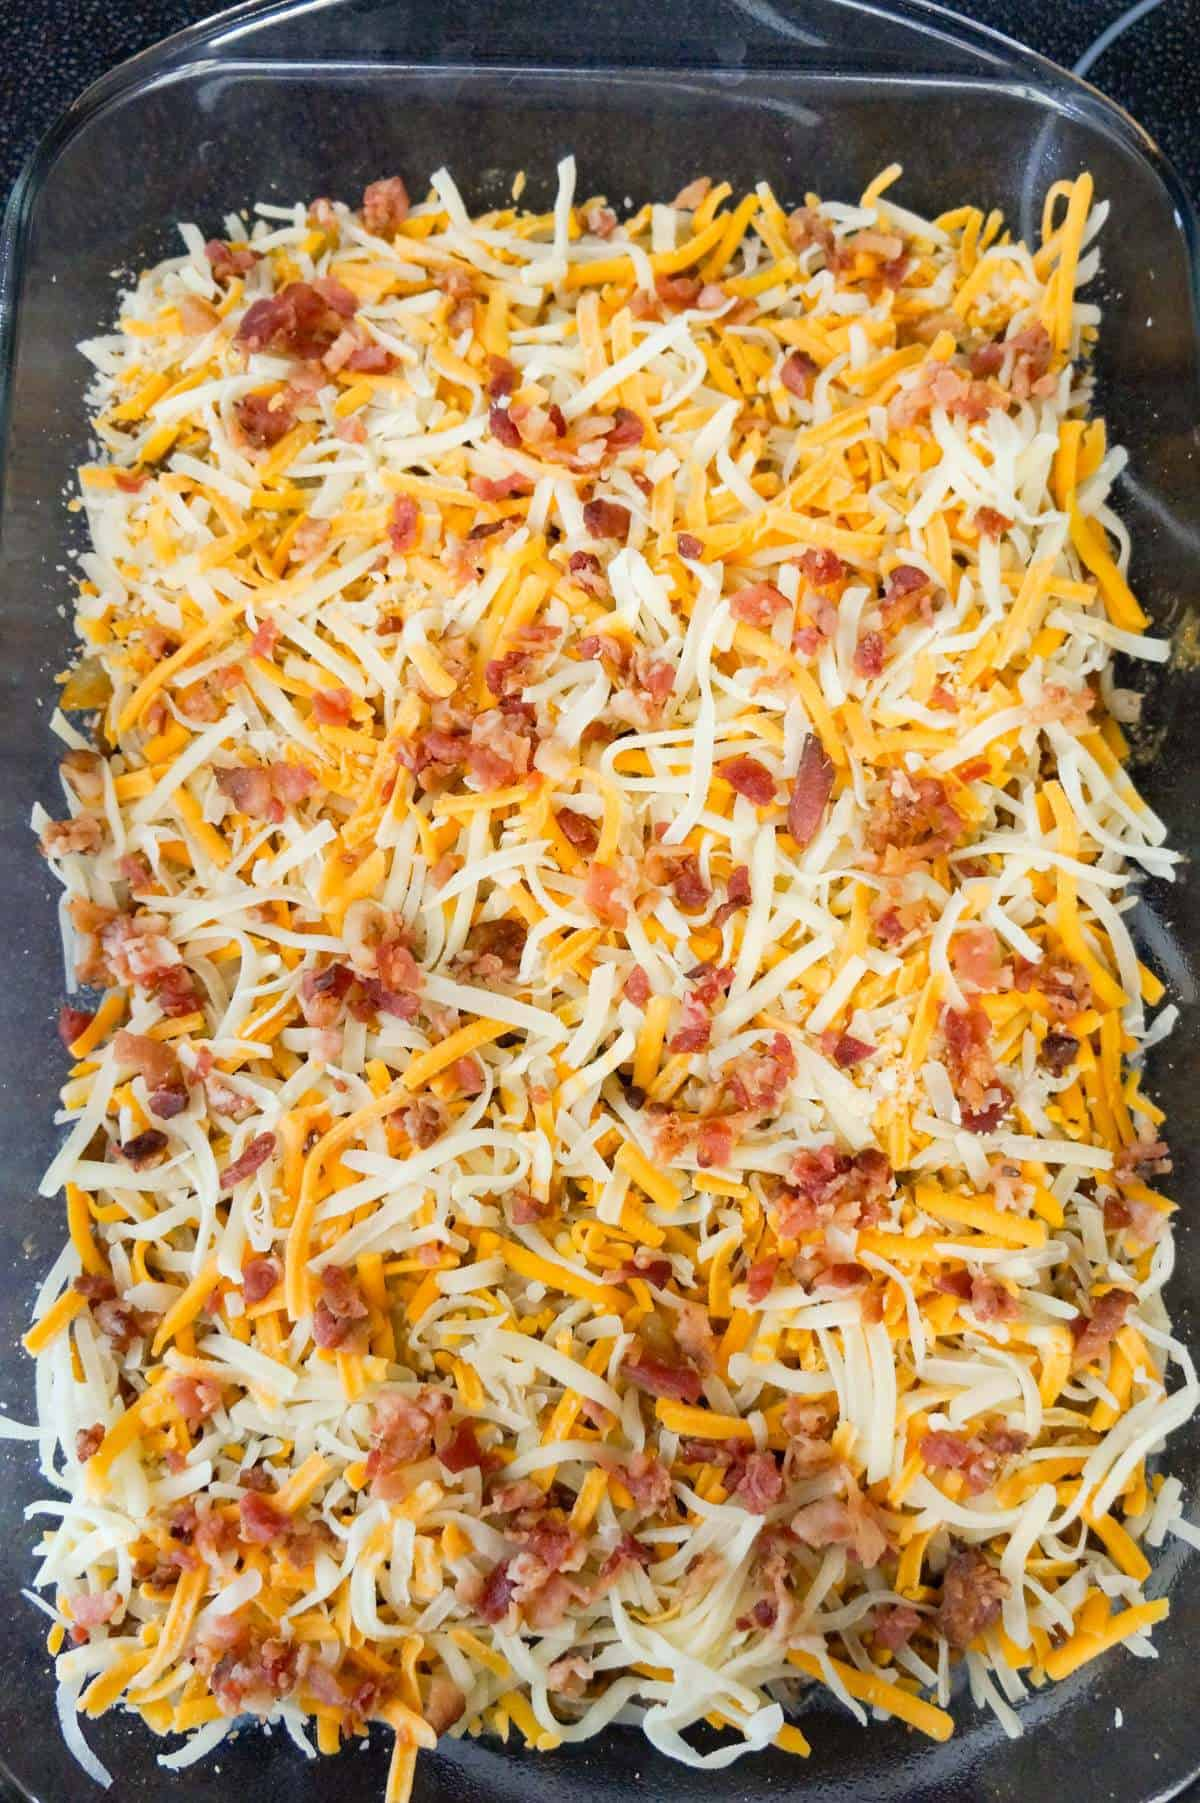 crumbled bacon and shredded cheese on top of cheeseburger casserole before baking